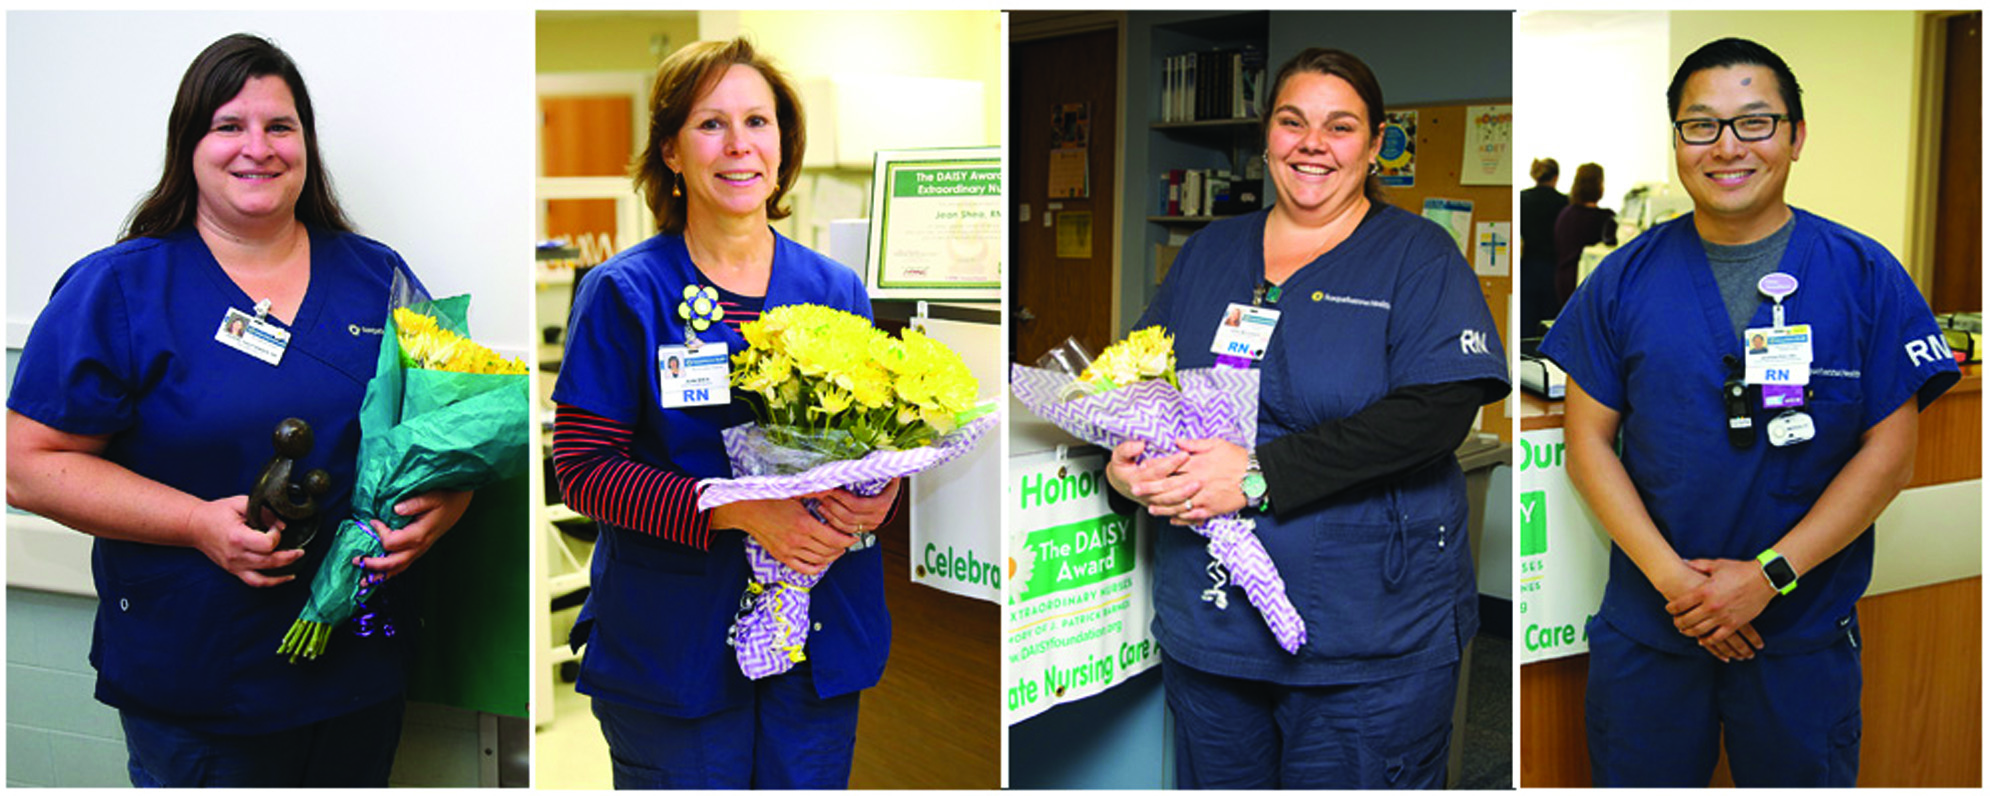 UPMC honors nurses with DAISY Award | News, Sports, Jobs - The